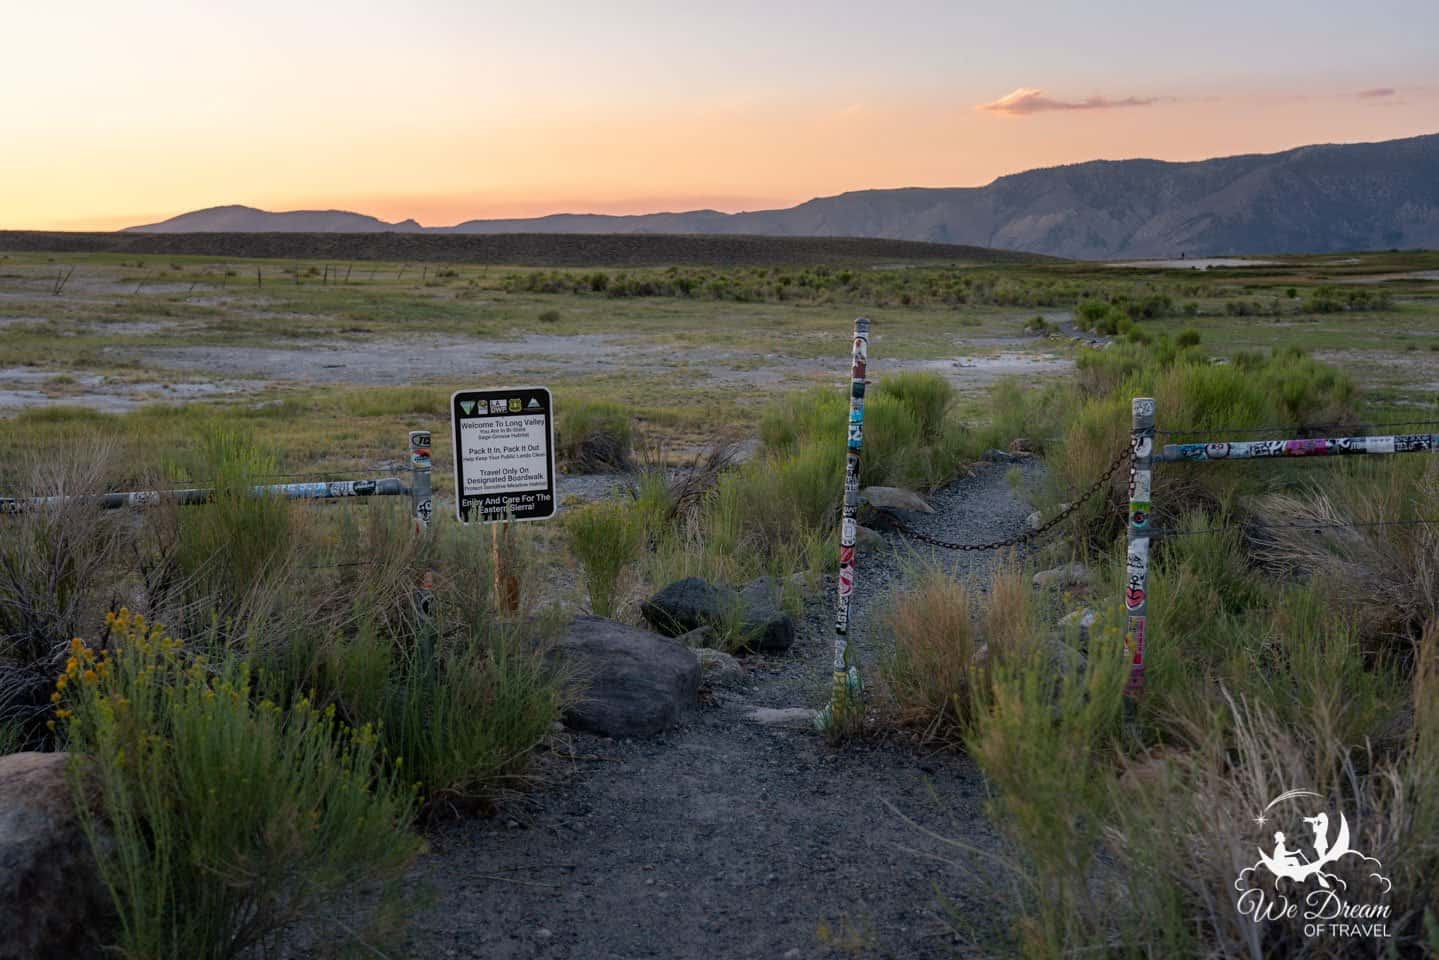 Start of the trail for Hilltop Hot Springs Mammoth Lakes